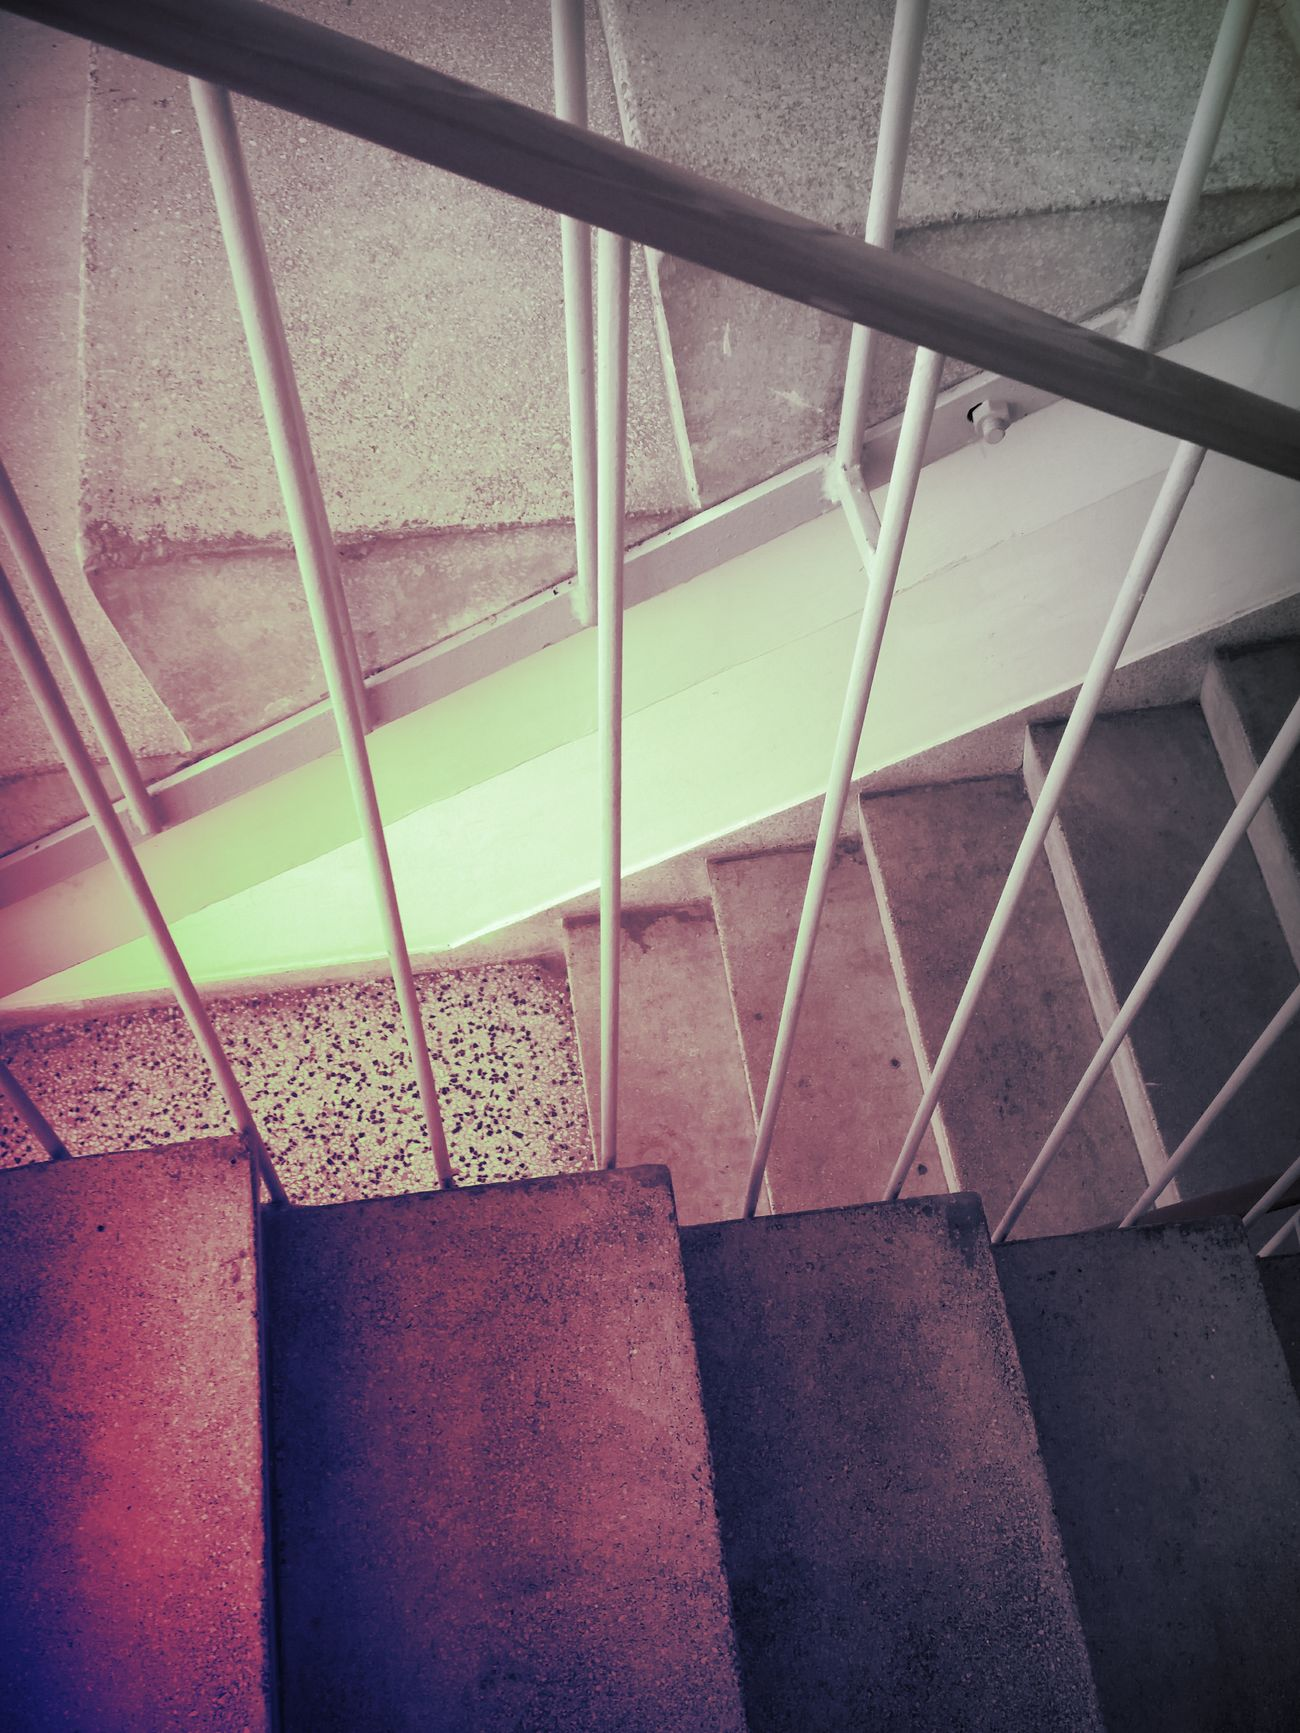 Indoors  Close-up No People Iron Iron - Metal Stairs Stair Stairs_collection Stairway Stairs & Shadows Indoor Photography Indoor Photo Indoorsphotography